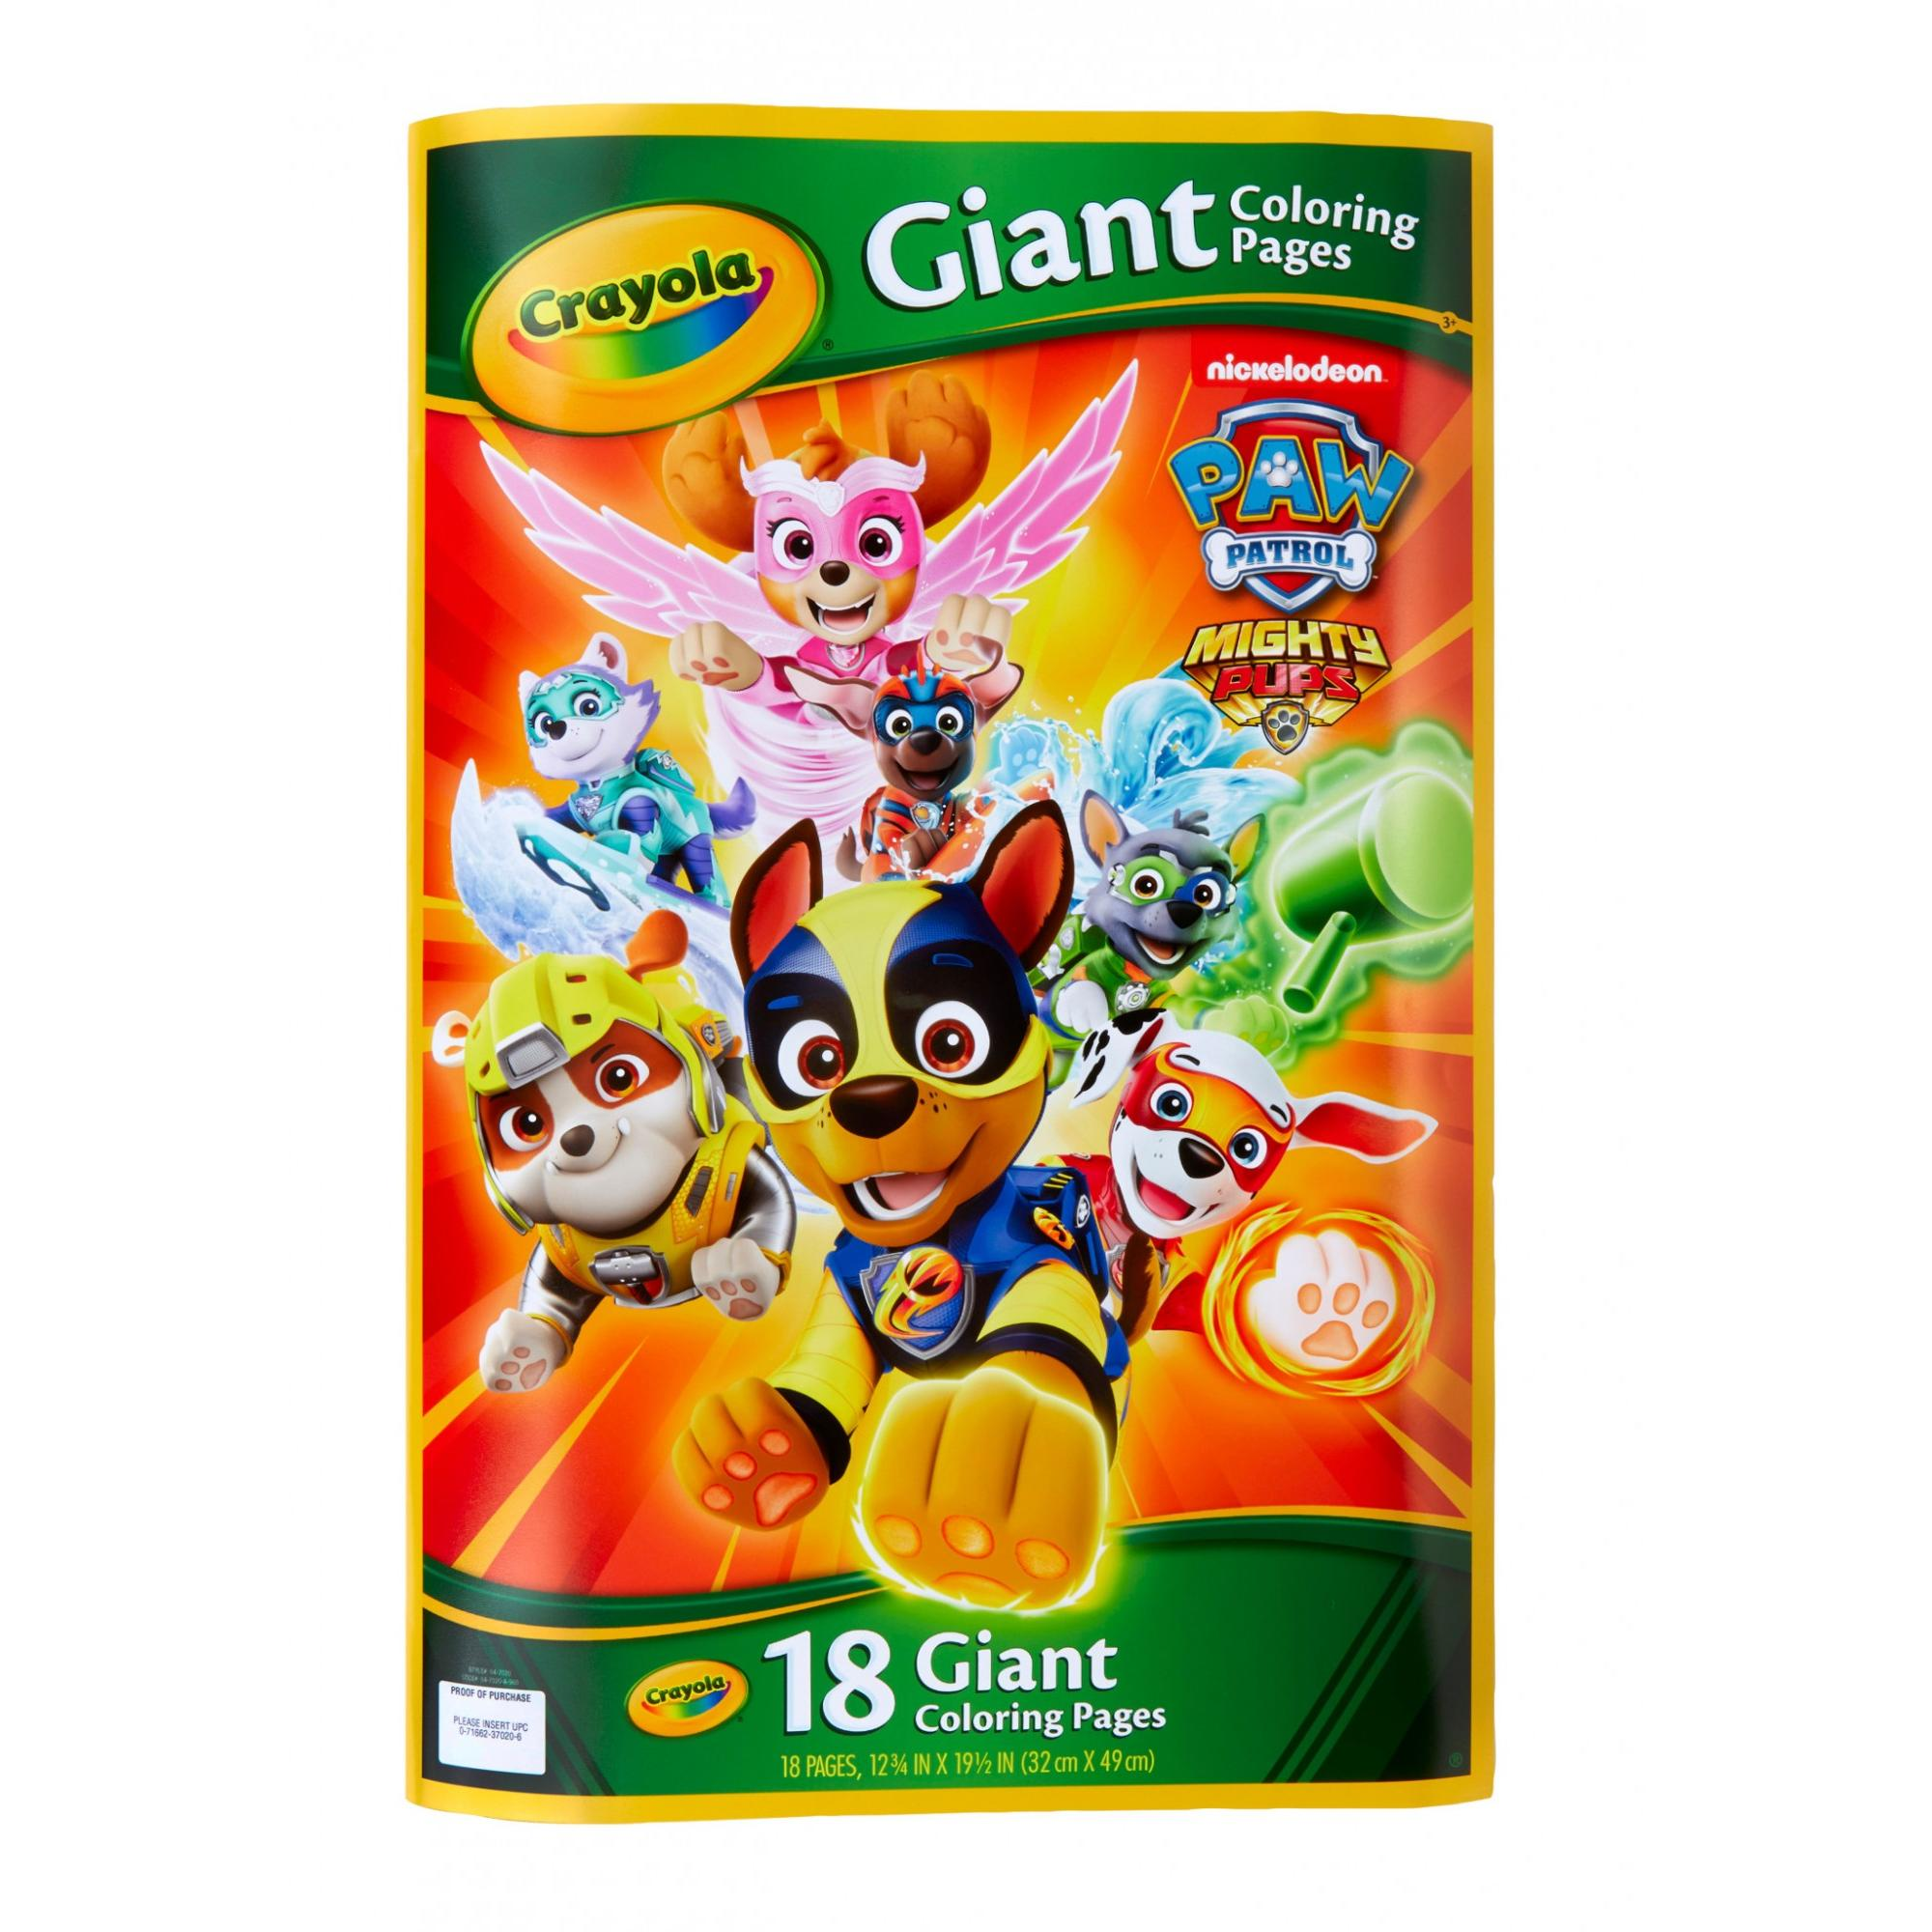 Crayola Paw Patrol Giant Coloring Pages, Gift For Kids, Age 3, 4, 5, 6